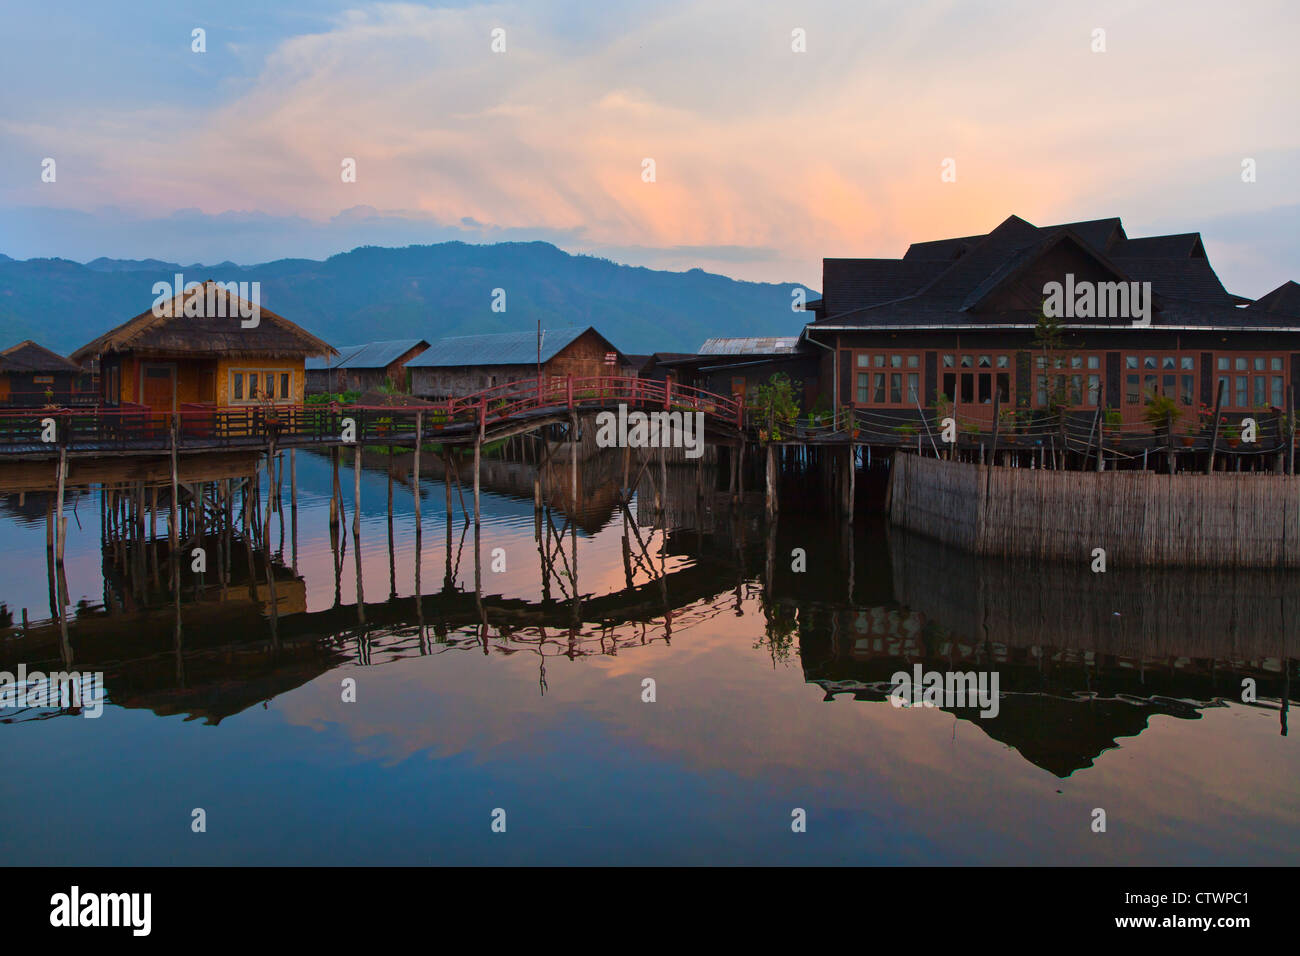 SKY LAKE RESORT consists of individual bungalos built on stilts on INLE LAKE - MYANMAR - Stock Image